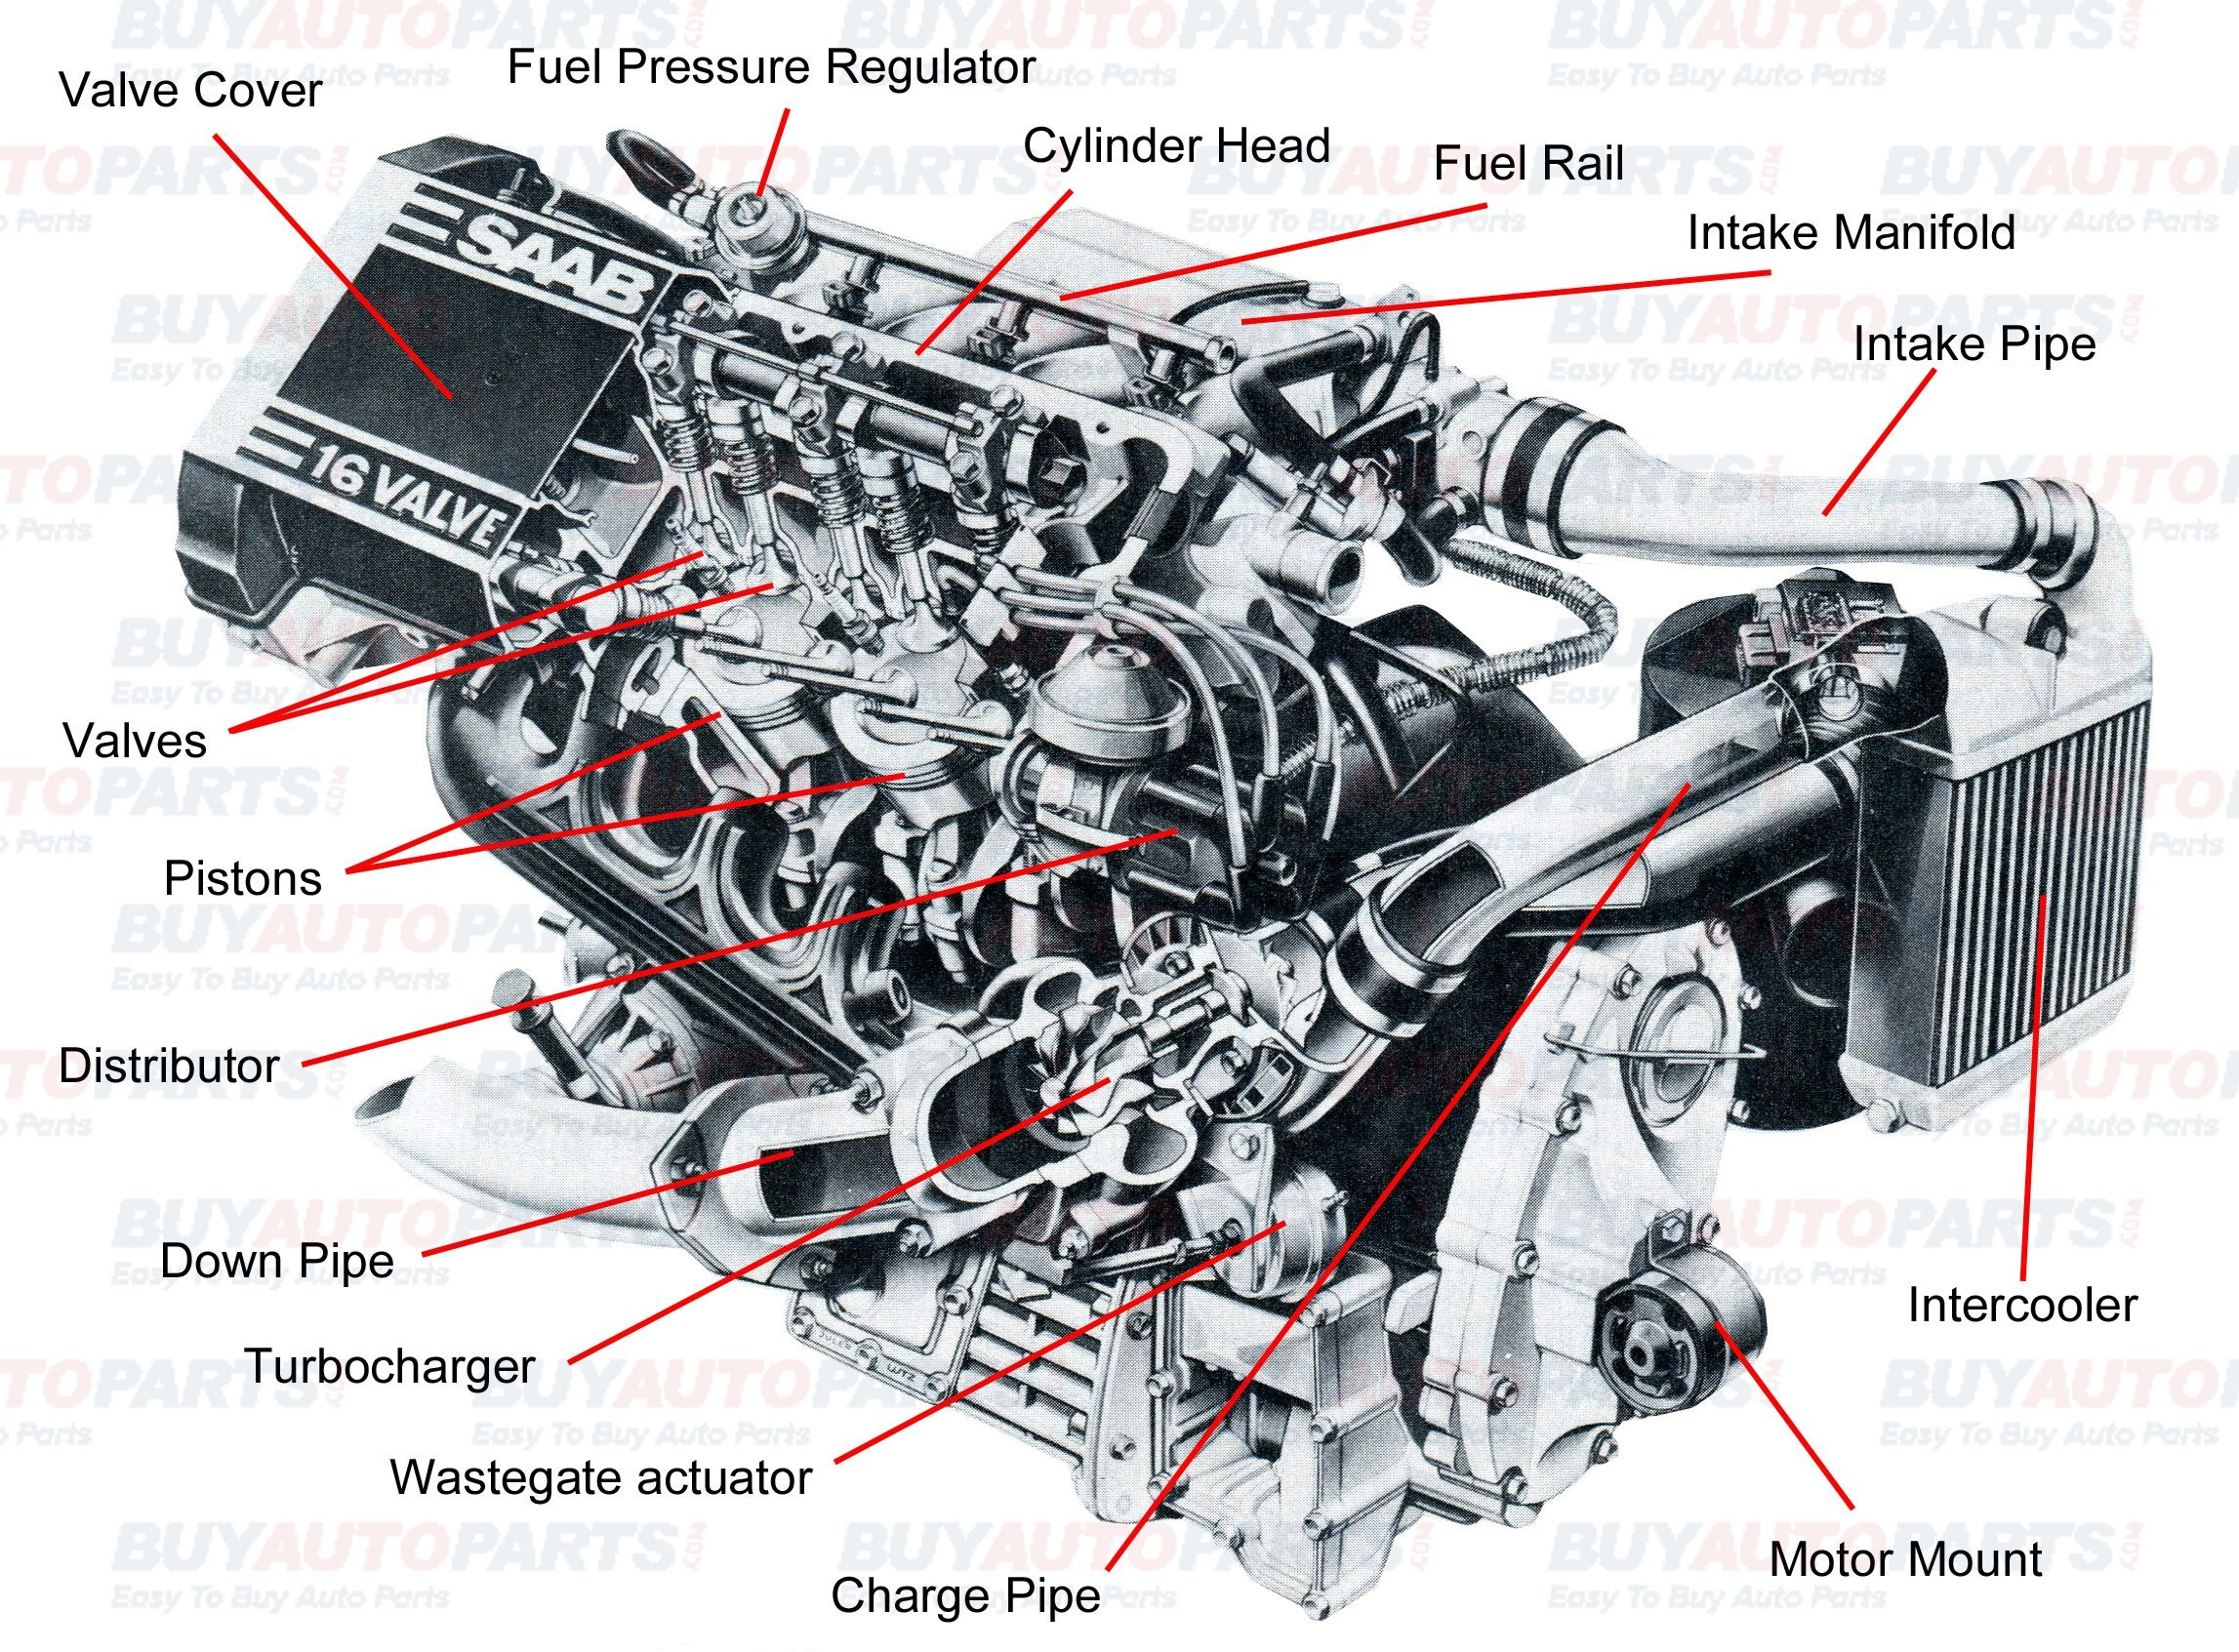 Car Front Suspension Diagram All Internal Bustion Engines Have the Same Basic Ponents the Of Car Front Suspension Diagram